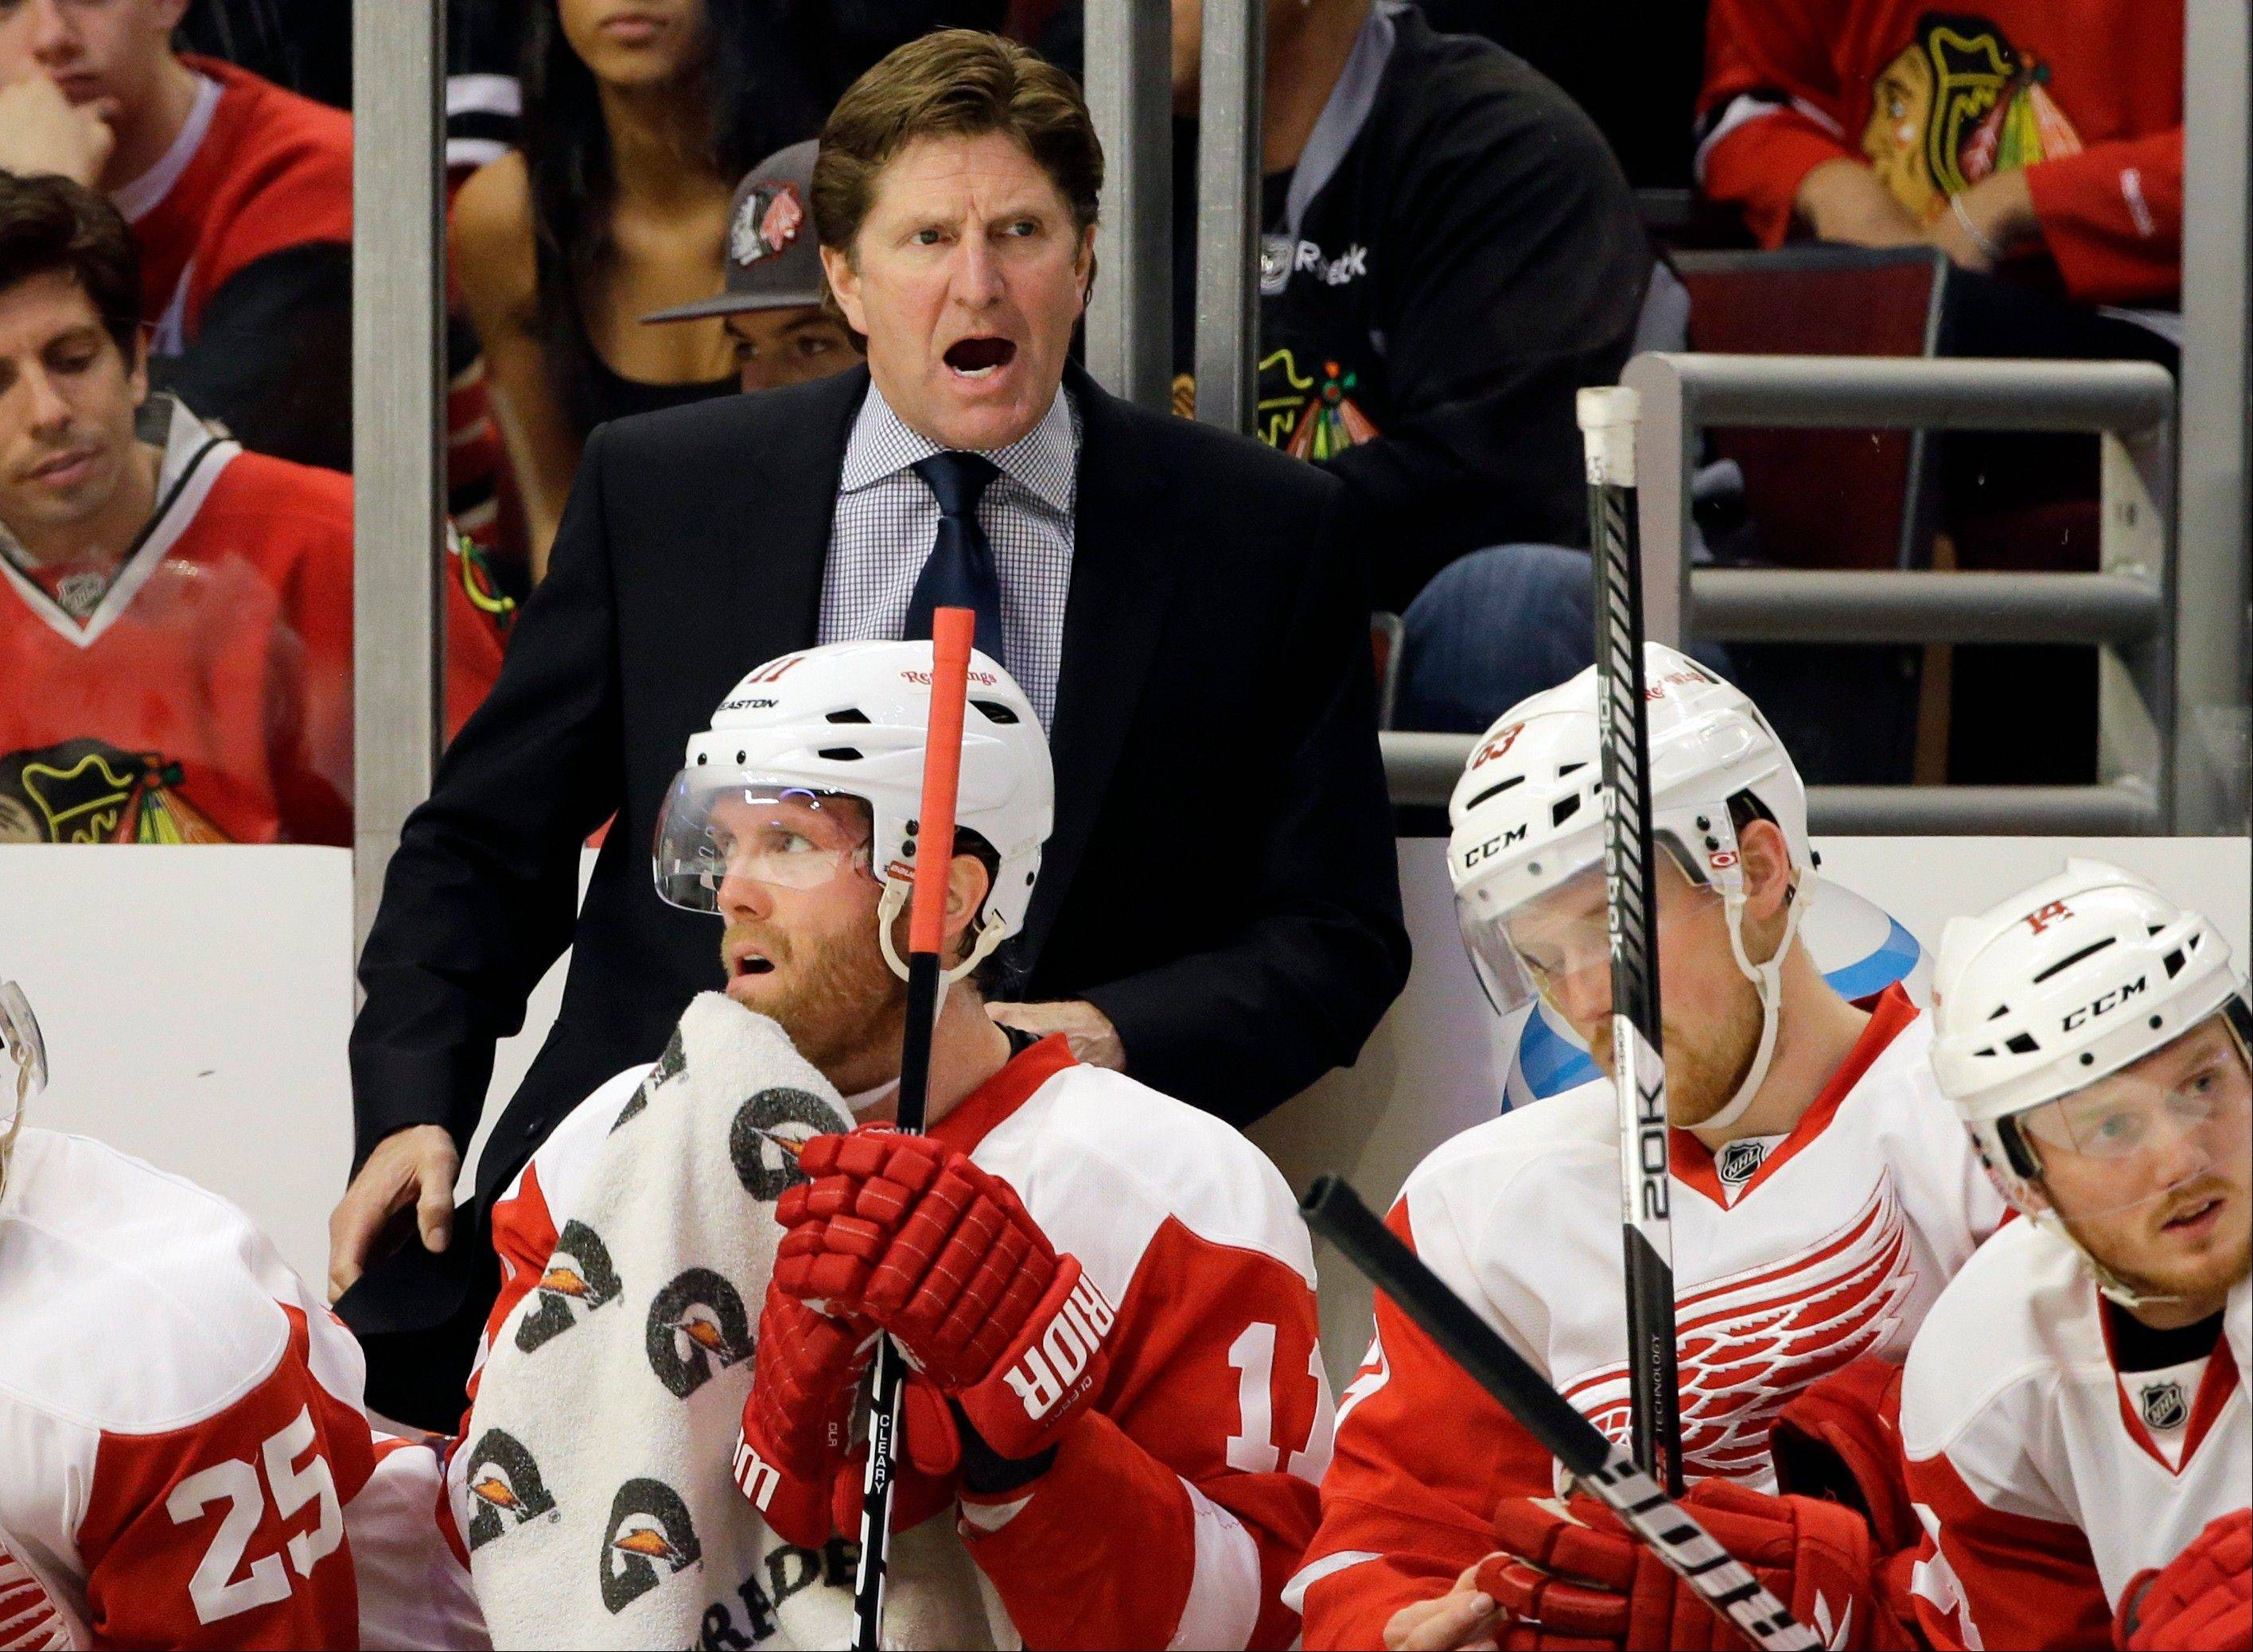 Detroit Red Wings head coach Mike Babcock, top, yells his team during the first period of Game 1 of an NHL hockey playoffs Western Conference semifinal against the Chicago Blackhawks in Chicago, Wednesday, May 15, 2013.